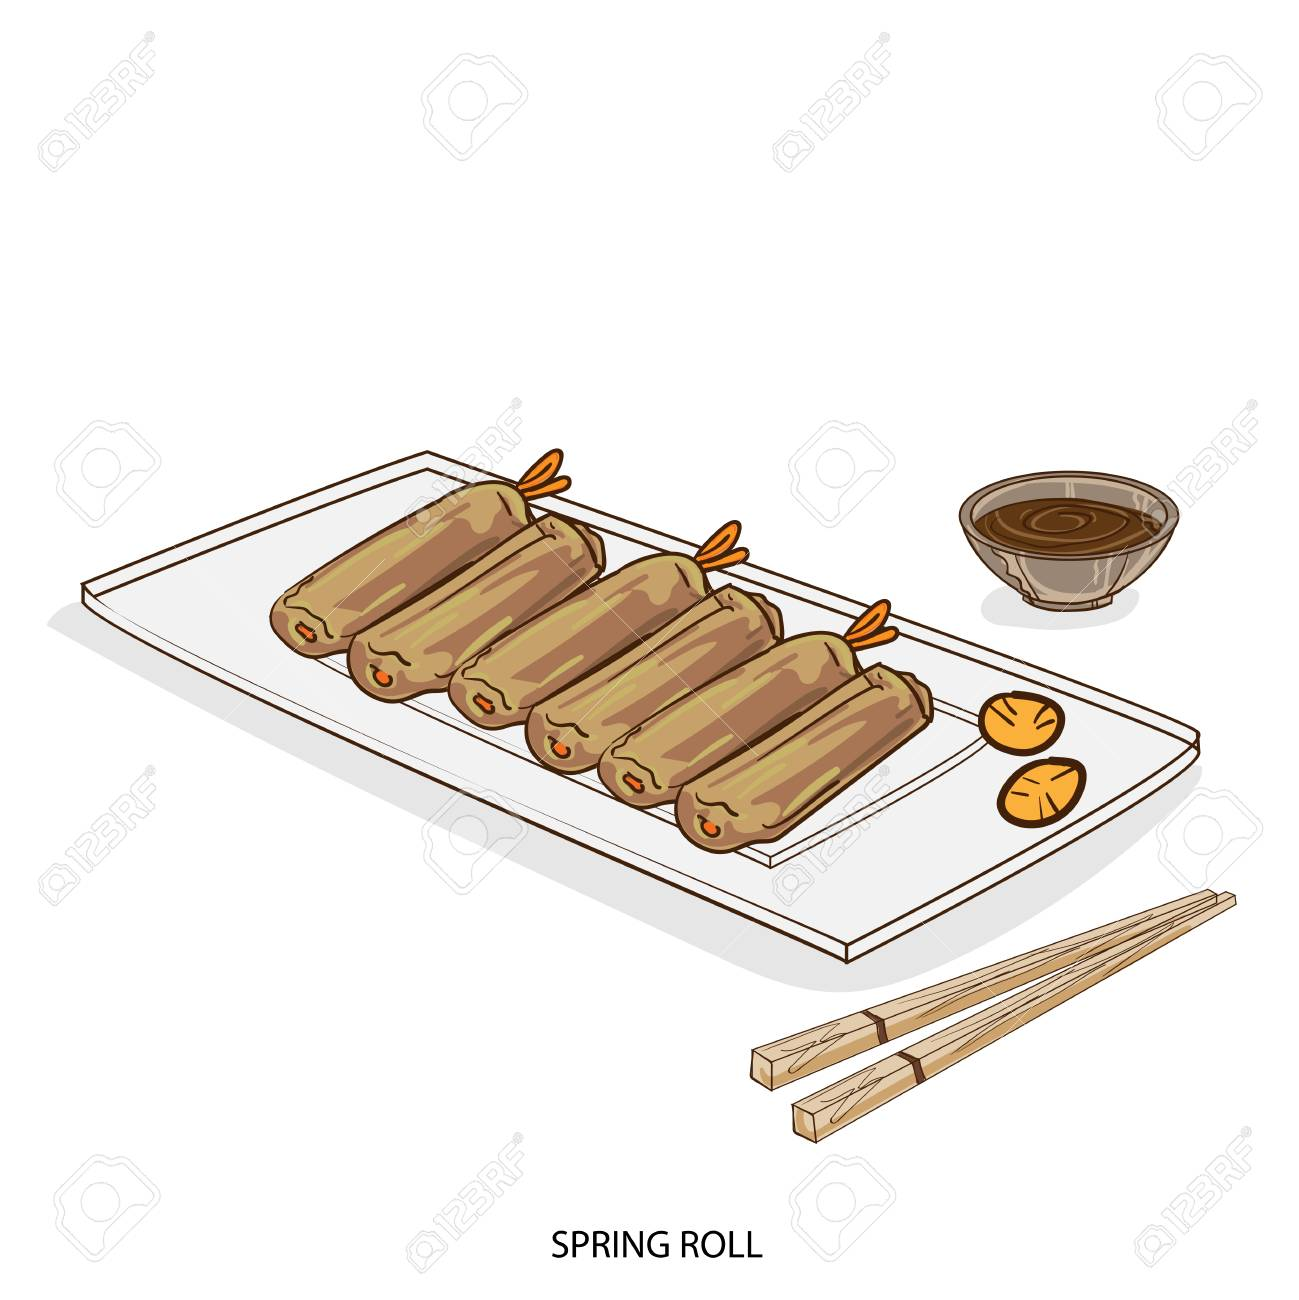 1299x1300 Food Object Spring Roll Hand Drawing Royalty Free Cliparts